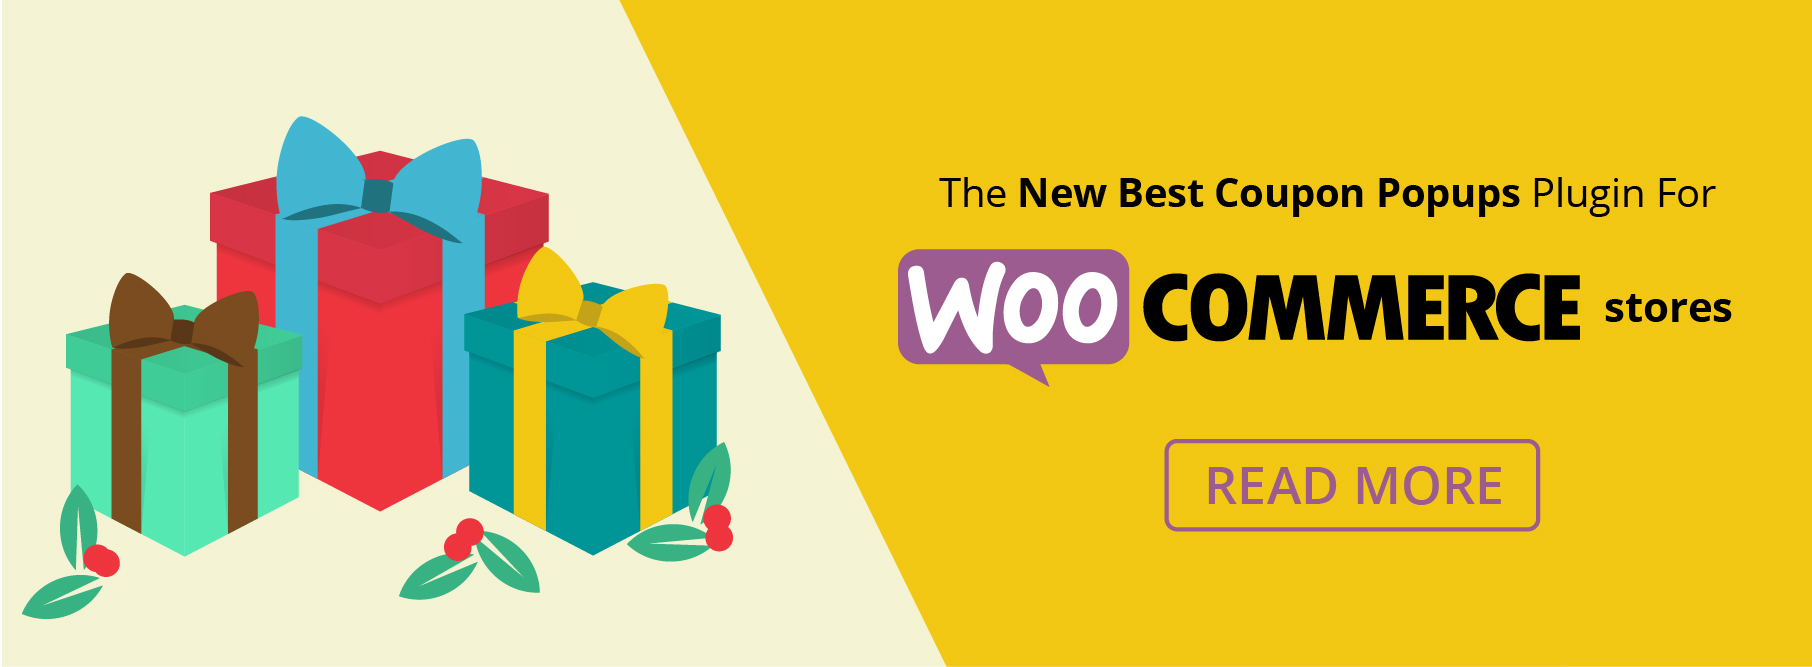 Best coupon popups for WooCommerce